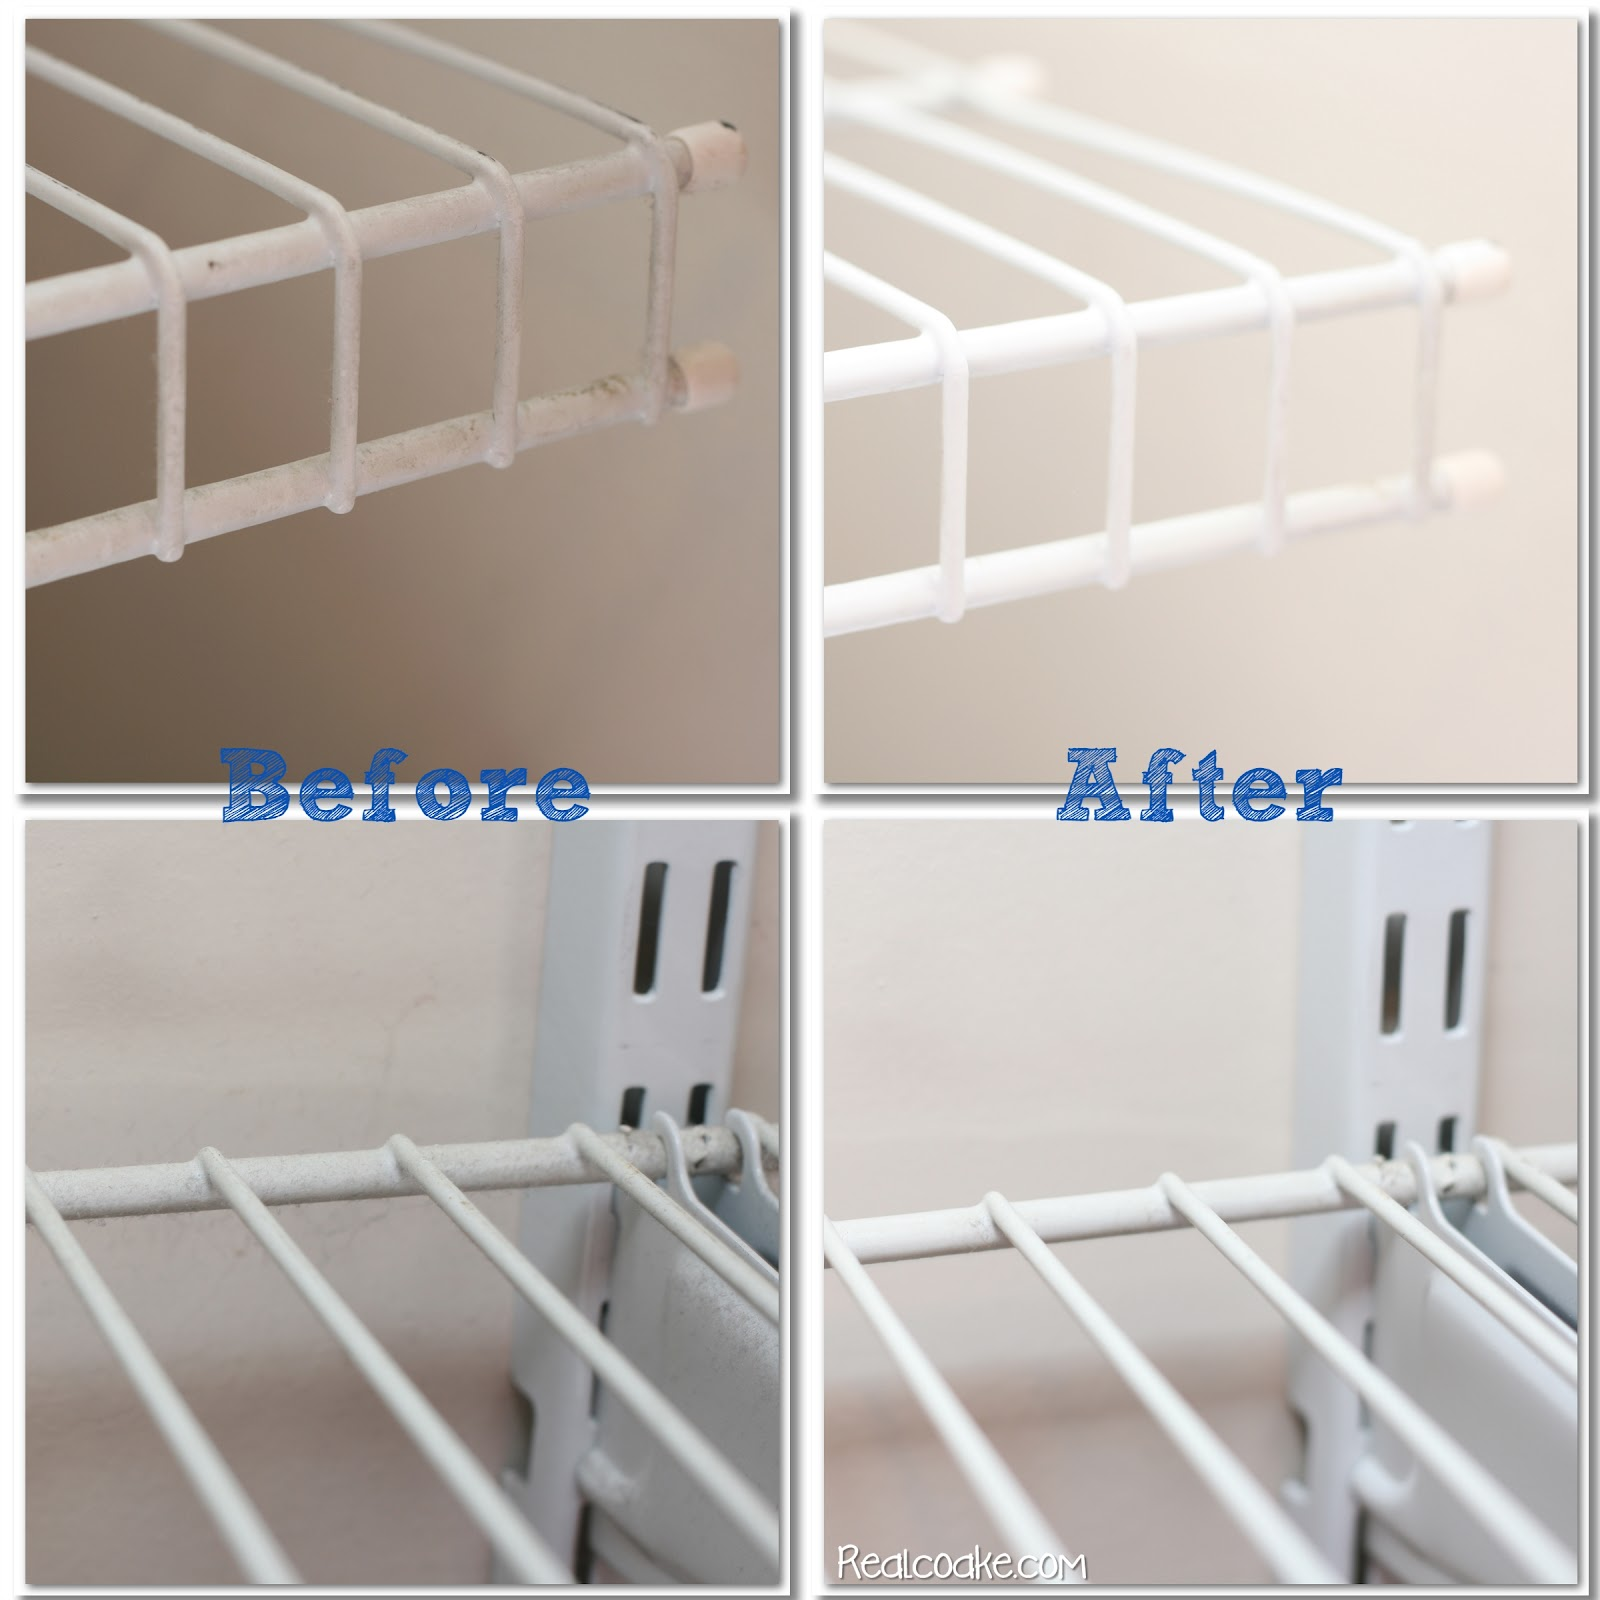 Diy Cleaning Wire Shelves The Real Thing With The Coake